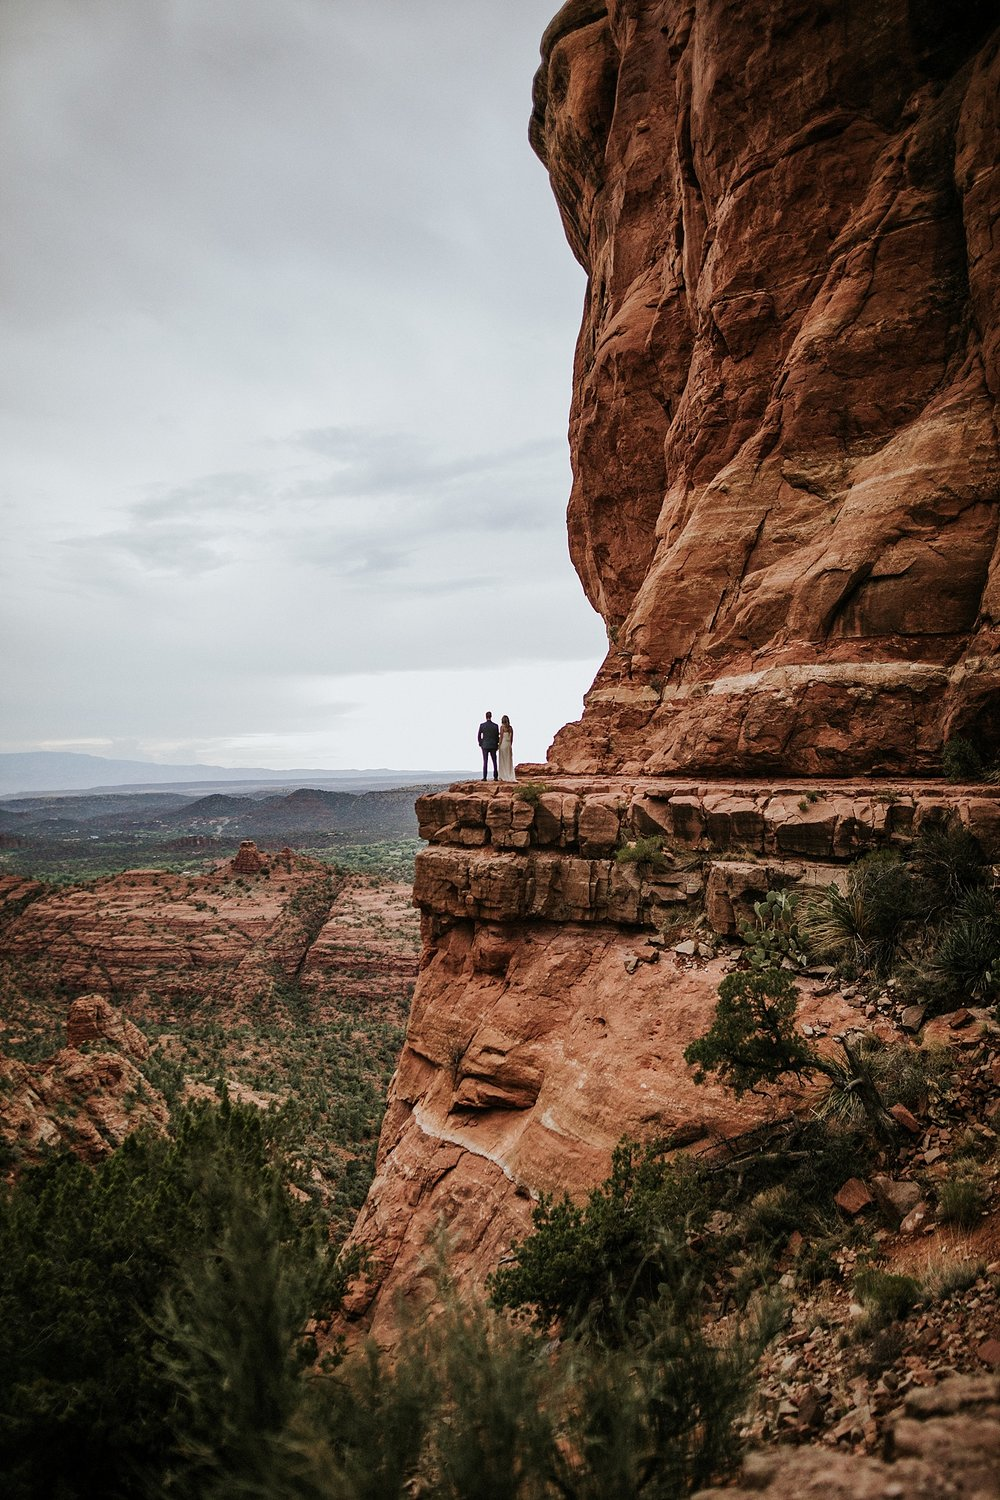 Anna + Stefan | Sedona Elopement Photo + Video | Click to read their story